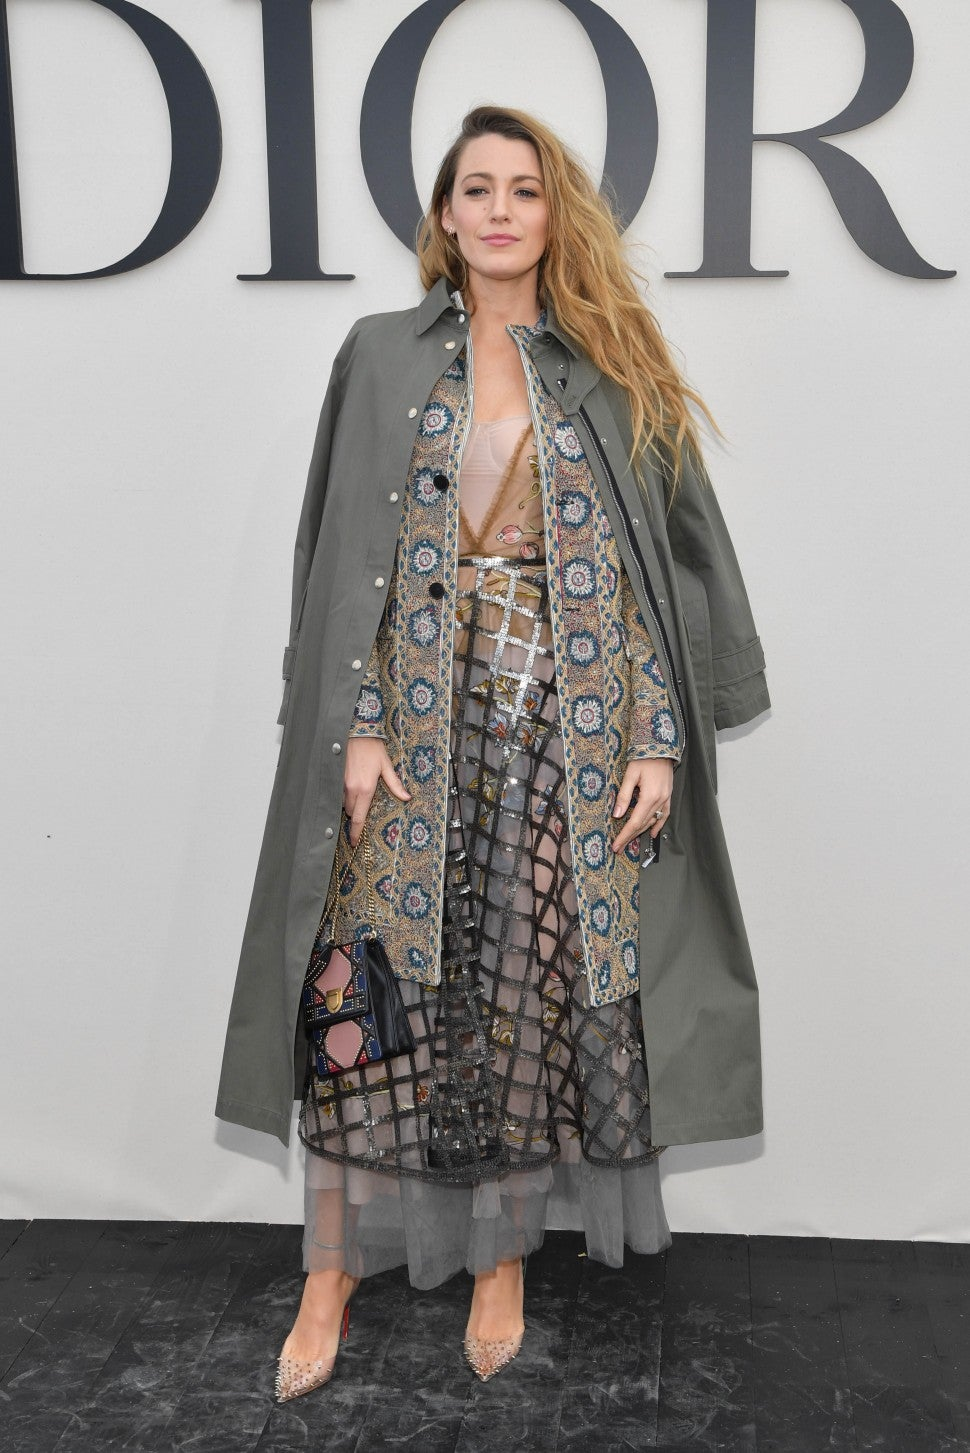 Blake Lively at Dior show in two coats